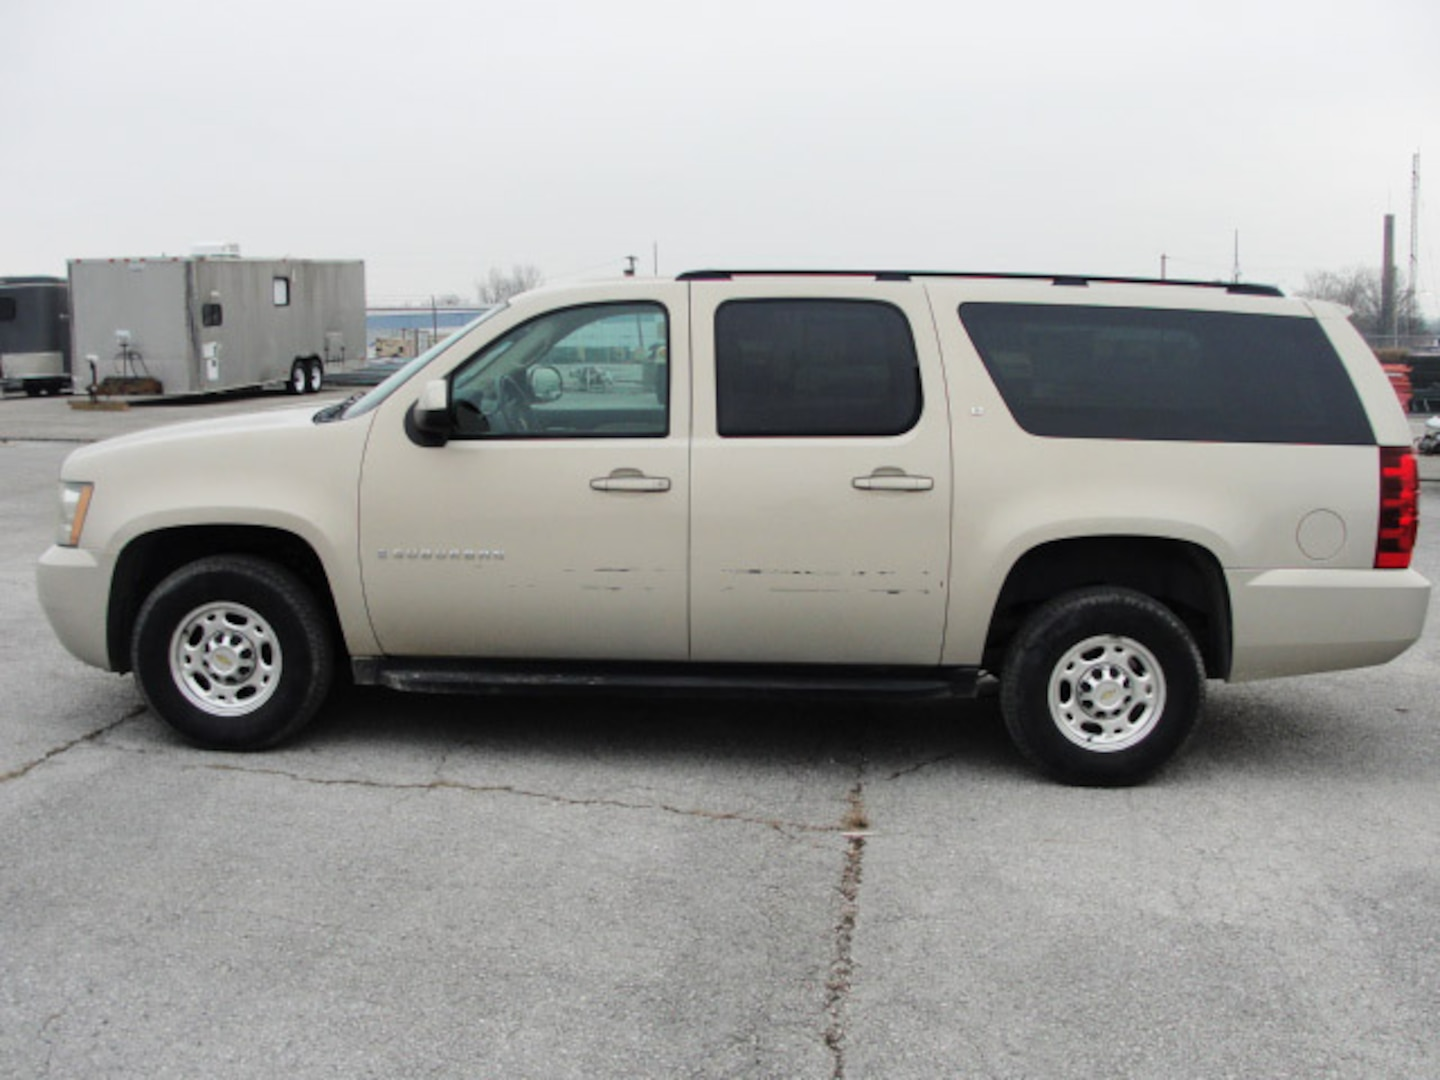 A Chevrolet Suburban prepares for new life in law enforcement as one of the vehicles Blue Grass provided to law enforcement agencies in Tennessee, Ohio, Kentucky, and New Jersey.